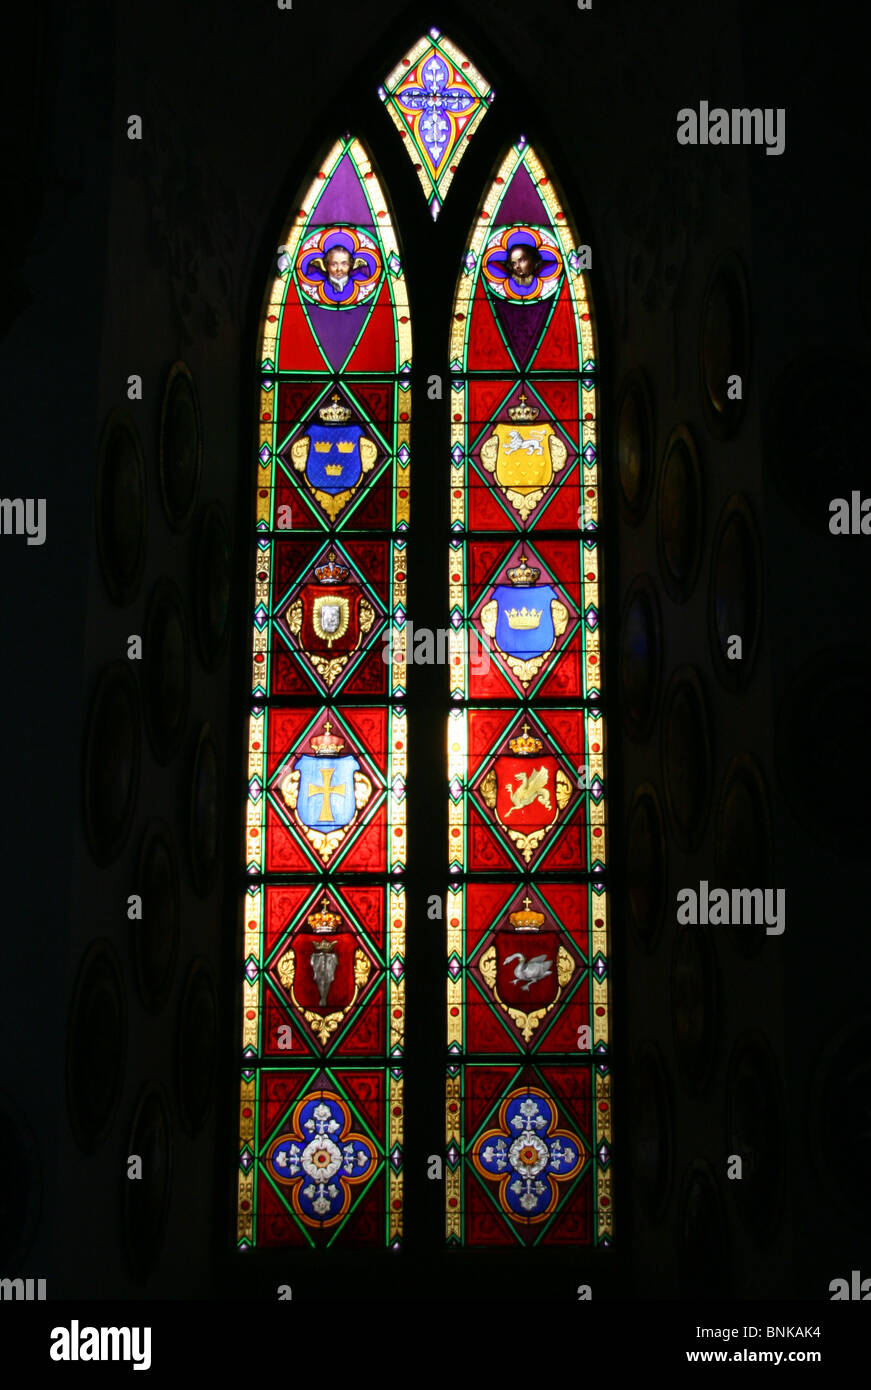 A stained glass window in the chapel of Frederiksborg Castle in Hilleroed, Denmark - Stock Image